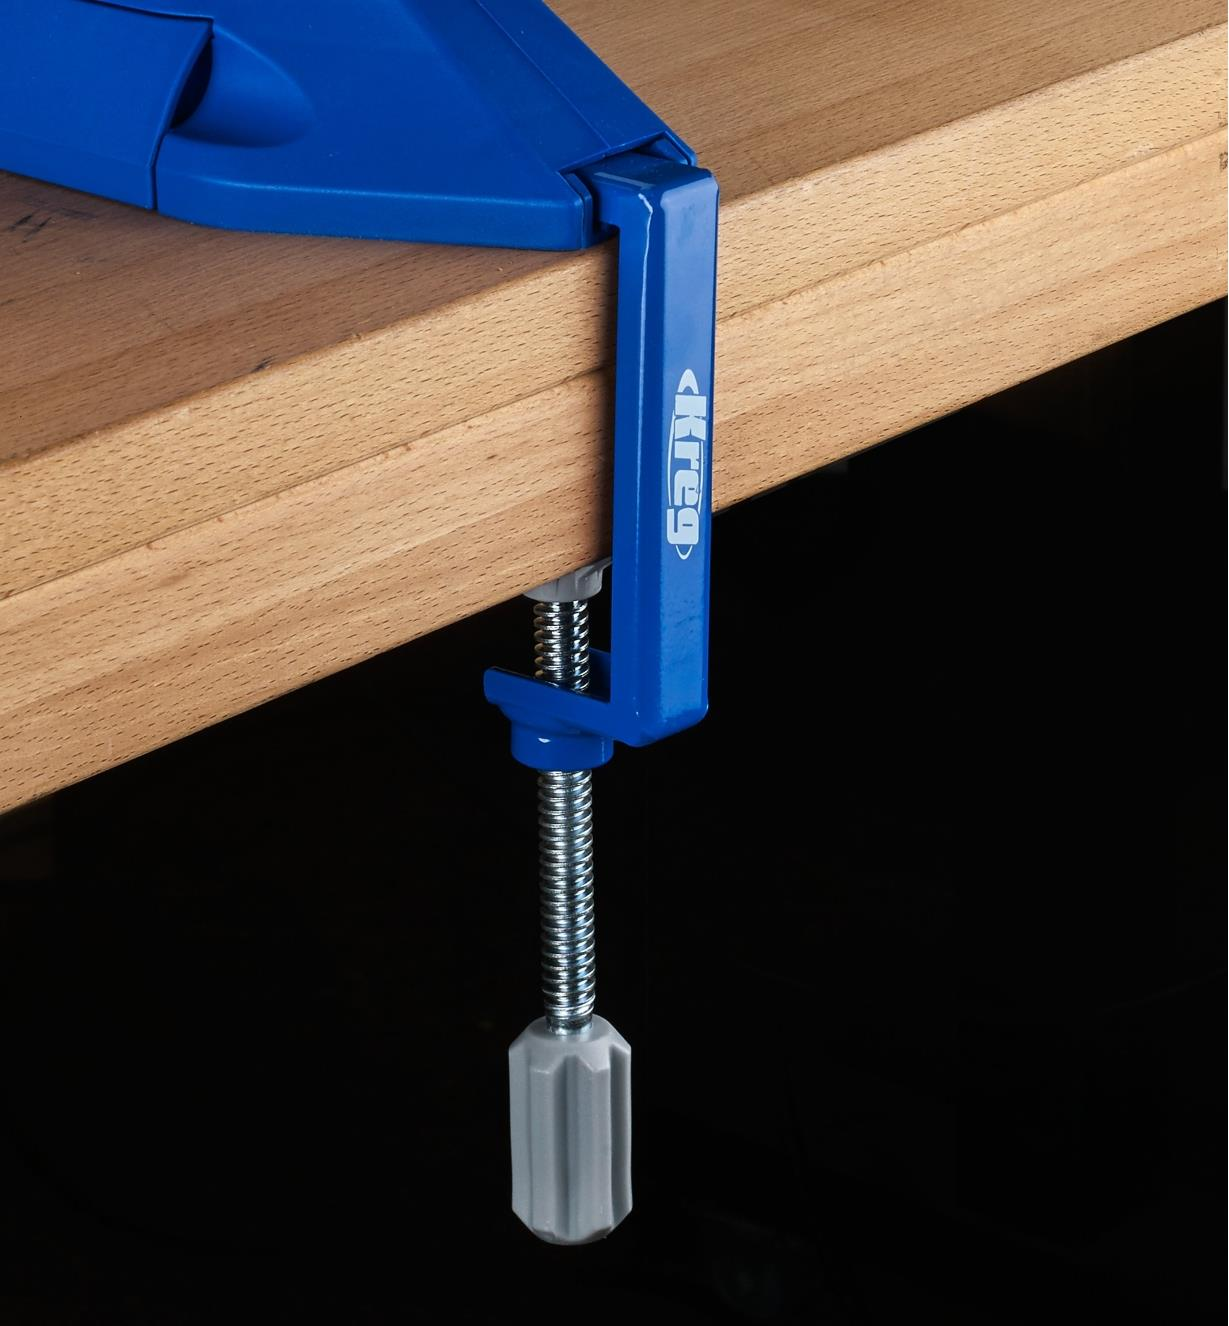 The table clamp being used to secure a Kreg pocket-hole jig to a workbench